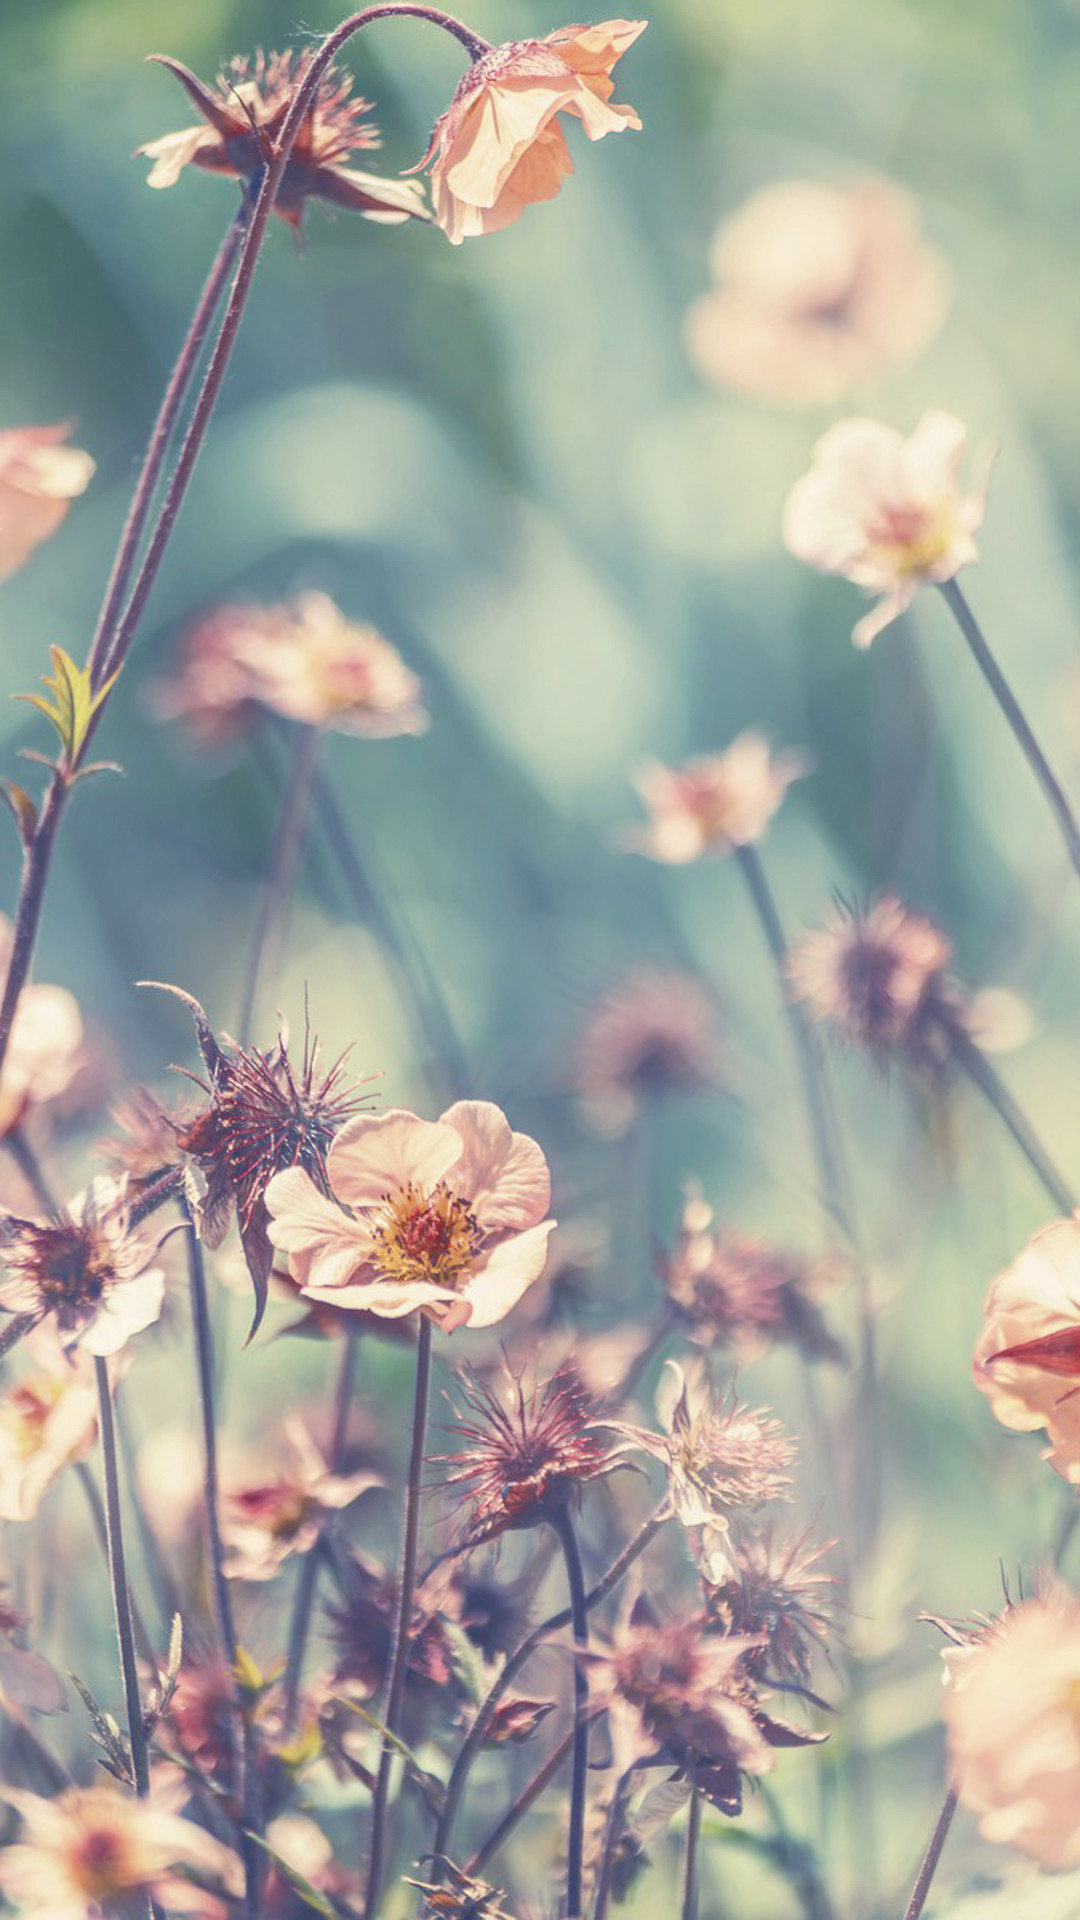 Girly Wallpapers Hd Flowers Hd Wallpapers Iphone Wallpaper